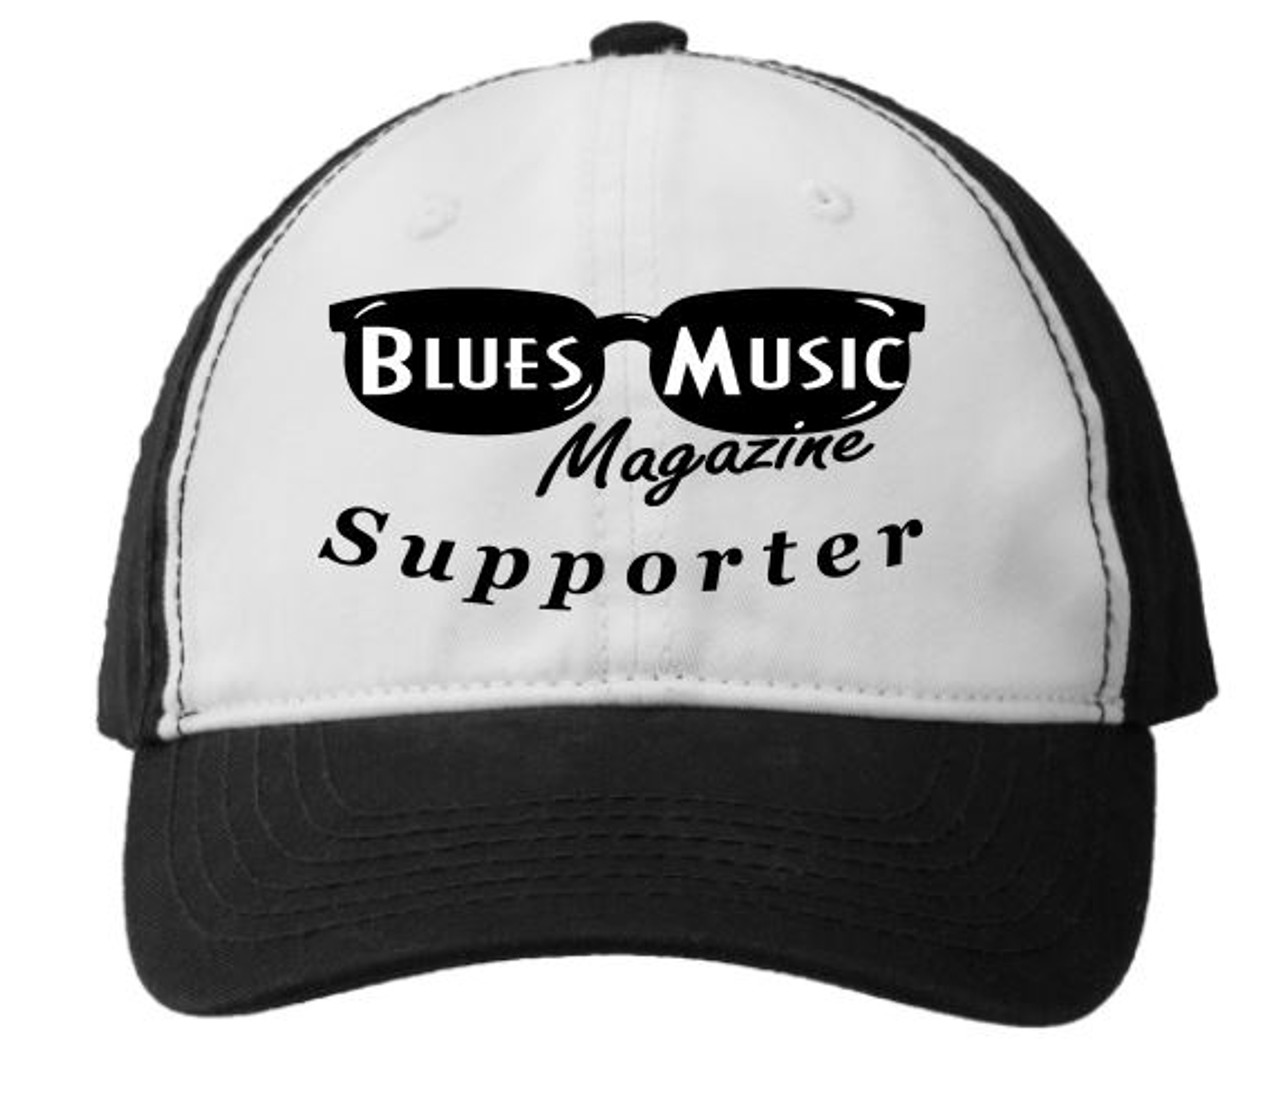 BLUES MUSIC MAGAZINE SUPPORTER BLACK & WHITE EMBROIDERED HAT